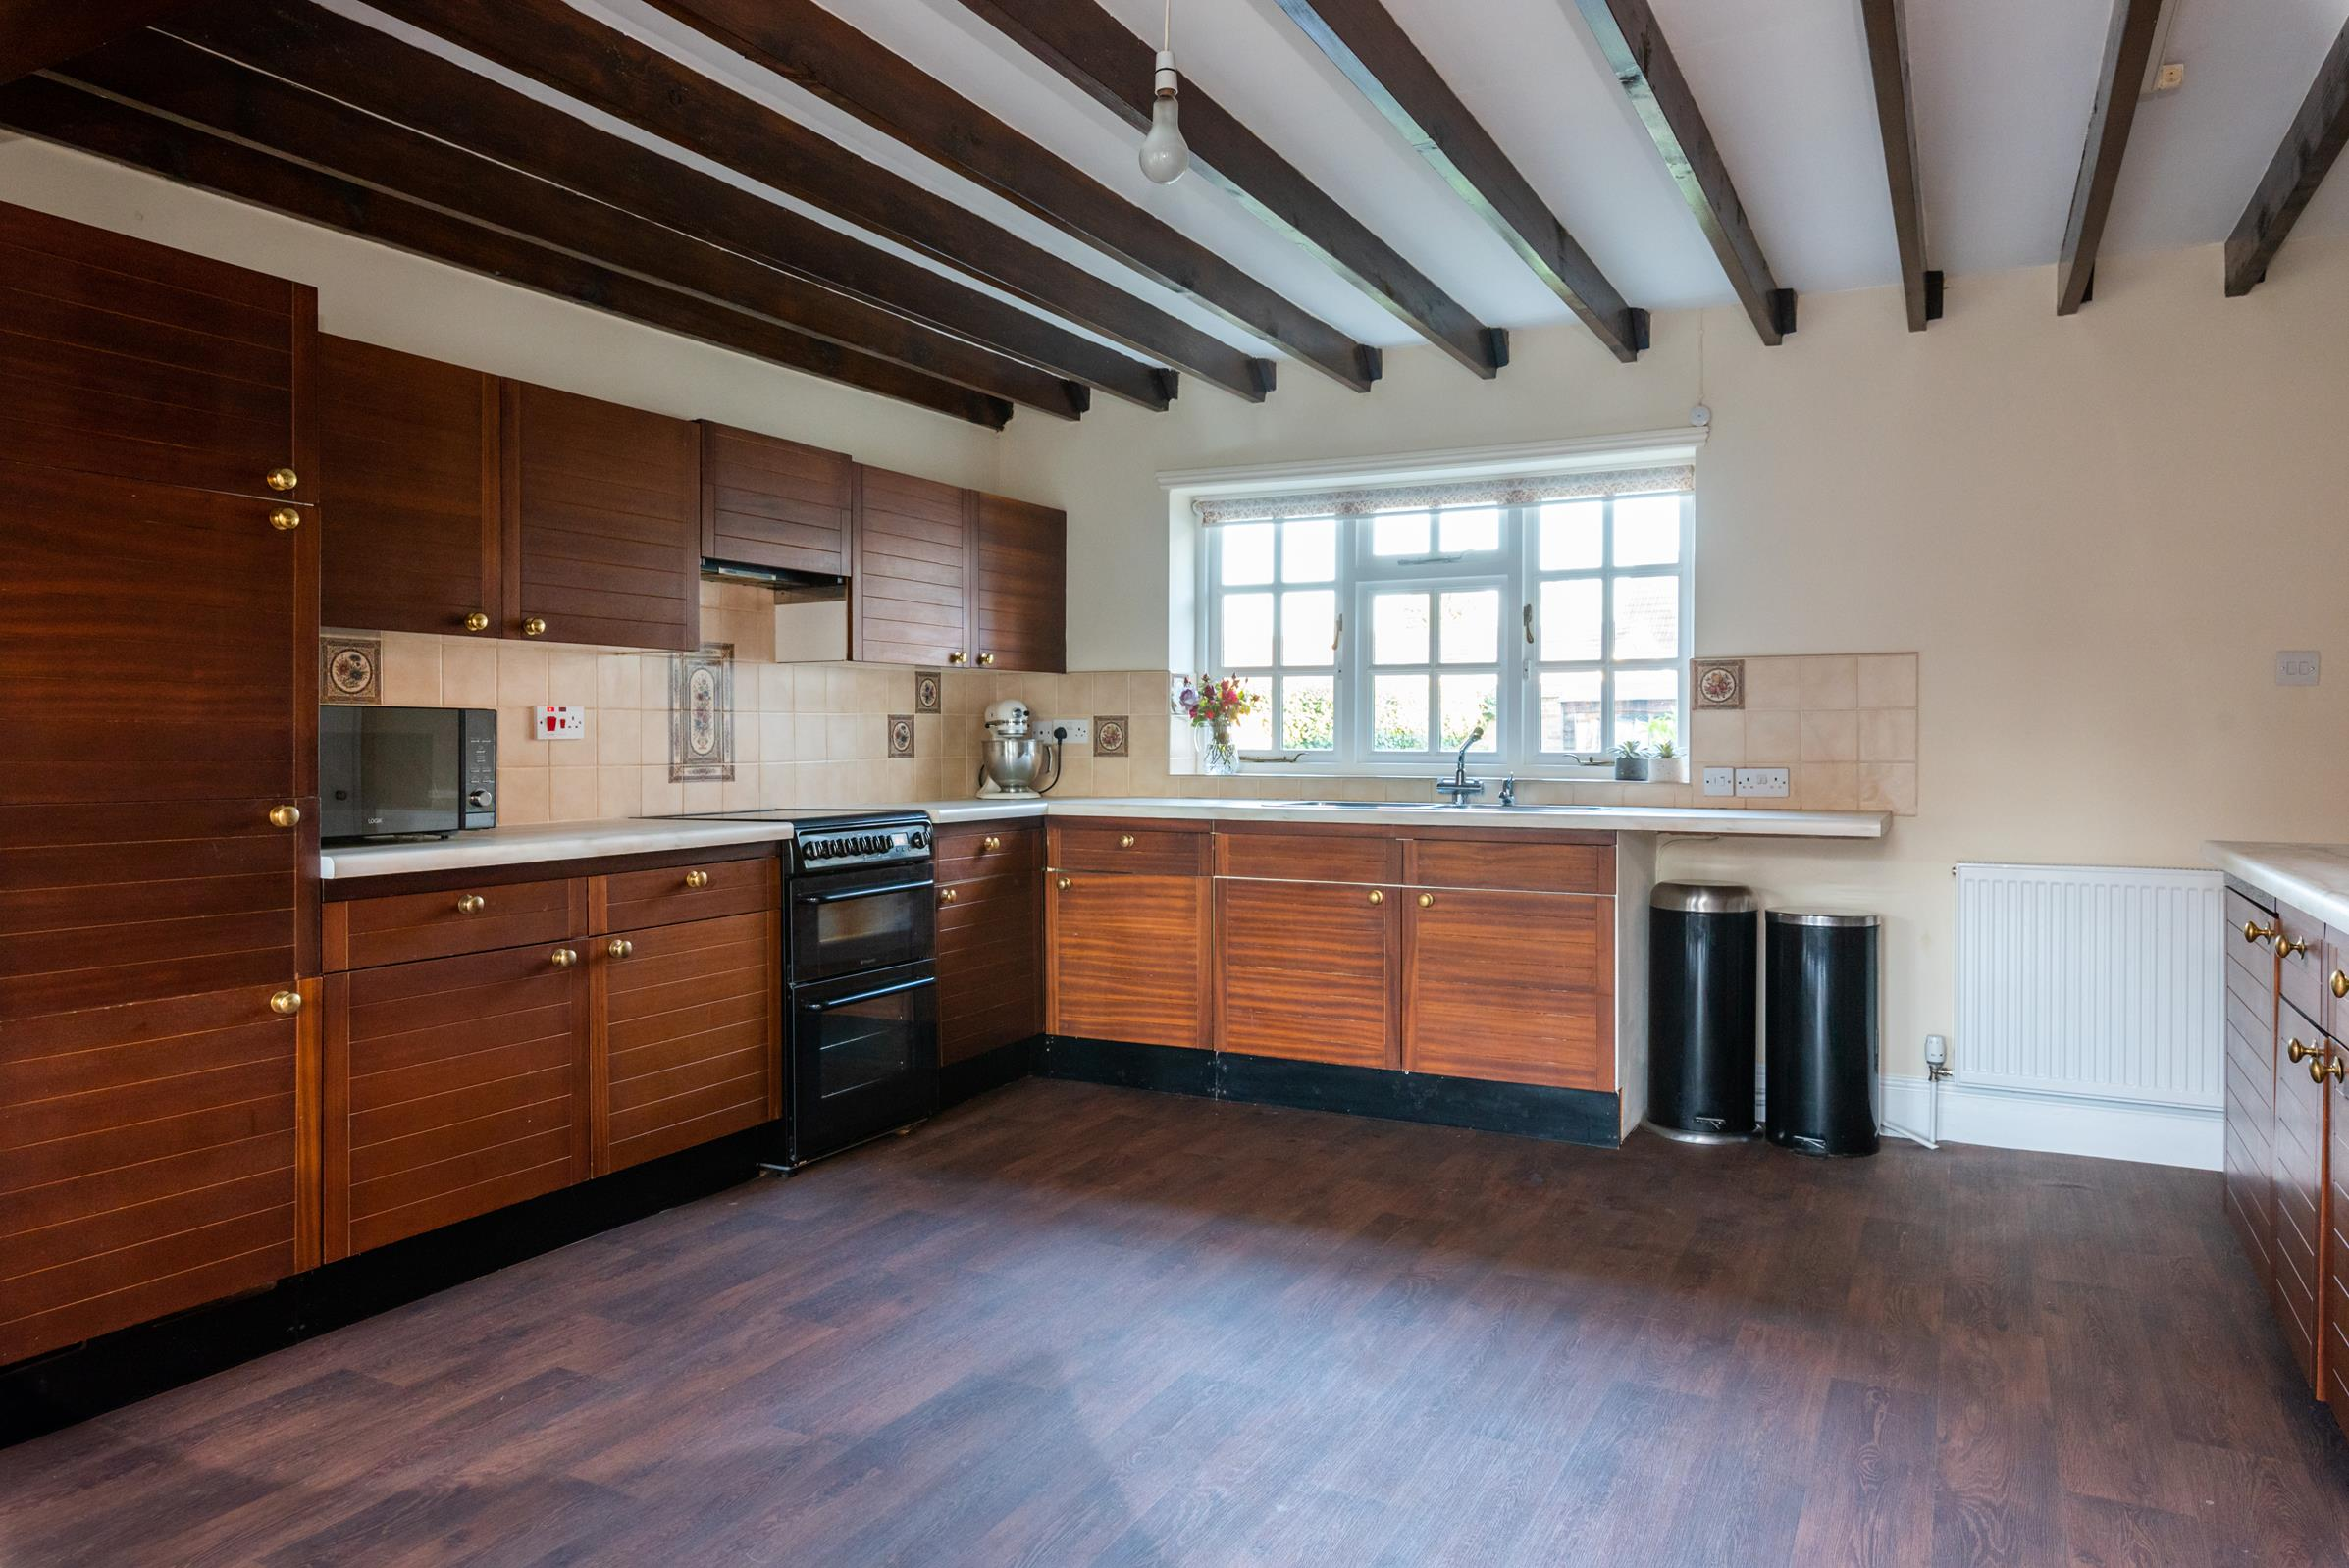 Unique Period Three Bedroomed Cottage In Highly Desirable